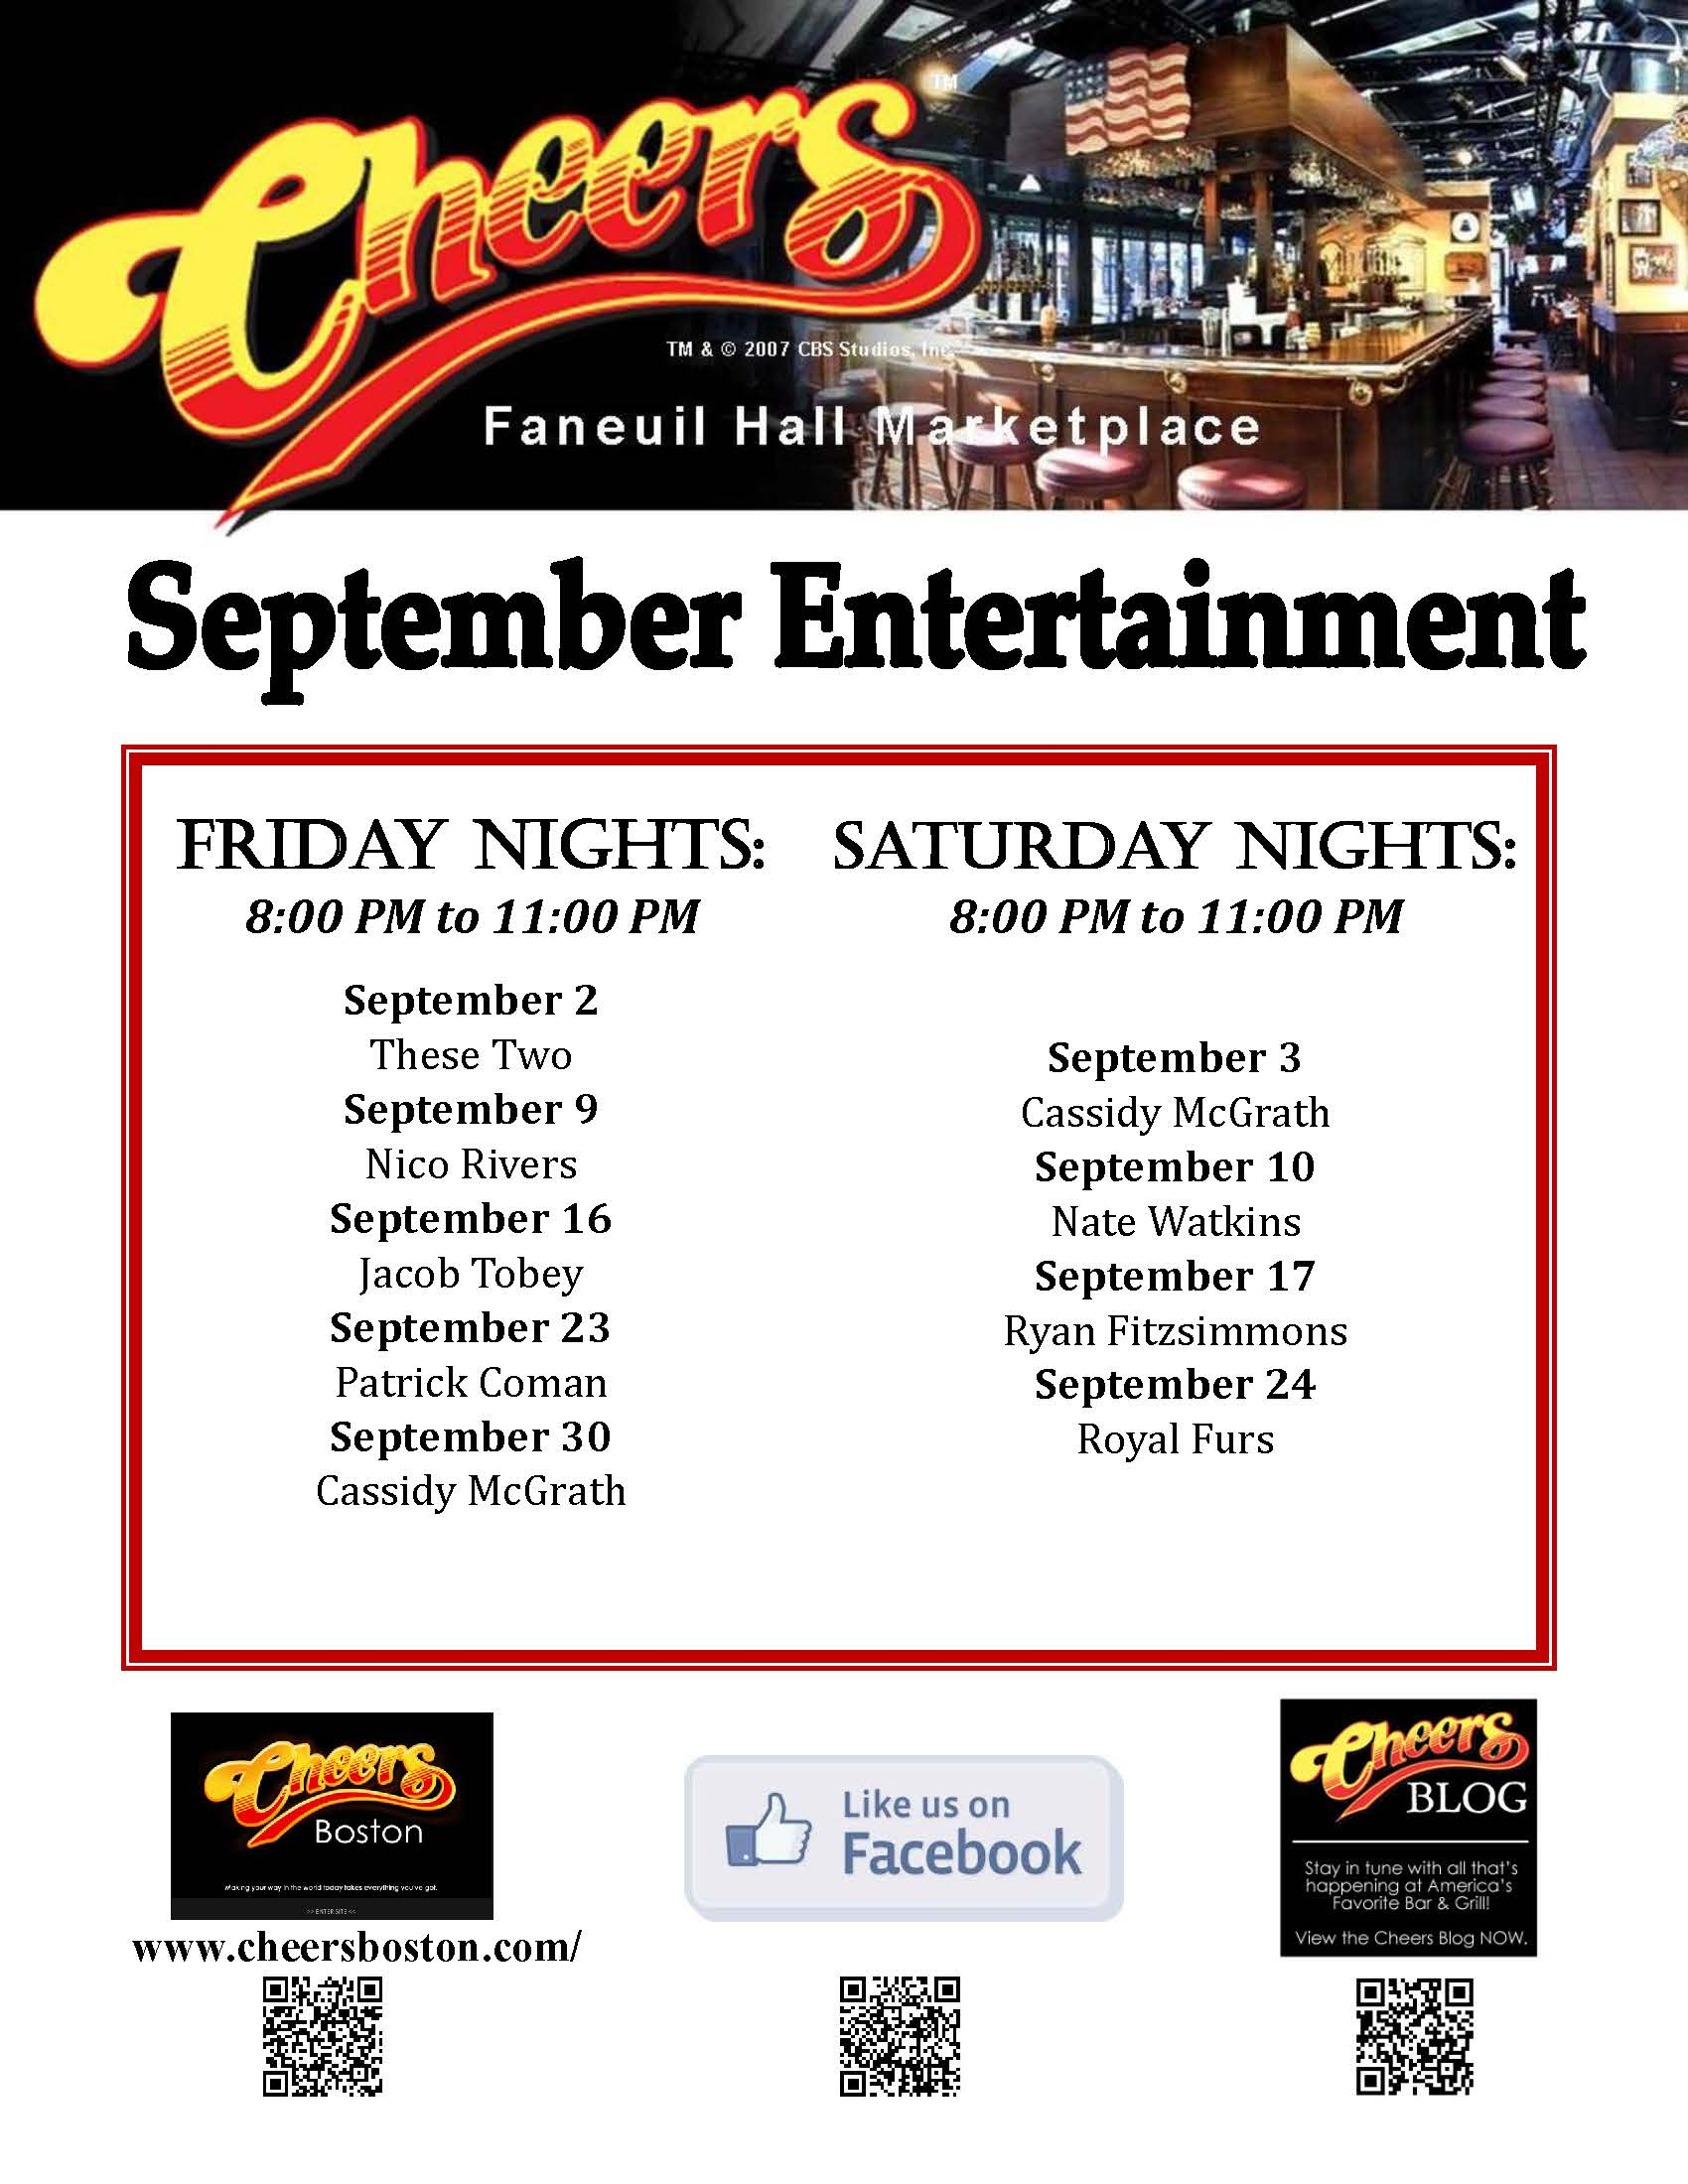 Join us at Cheers Faneuil Hall in the month of September for LIVE Entertainment